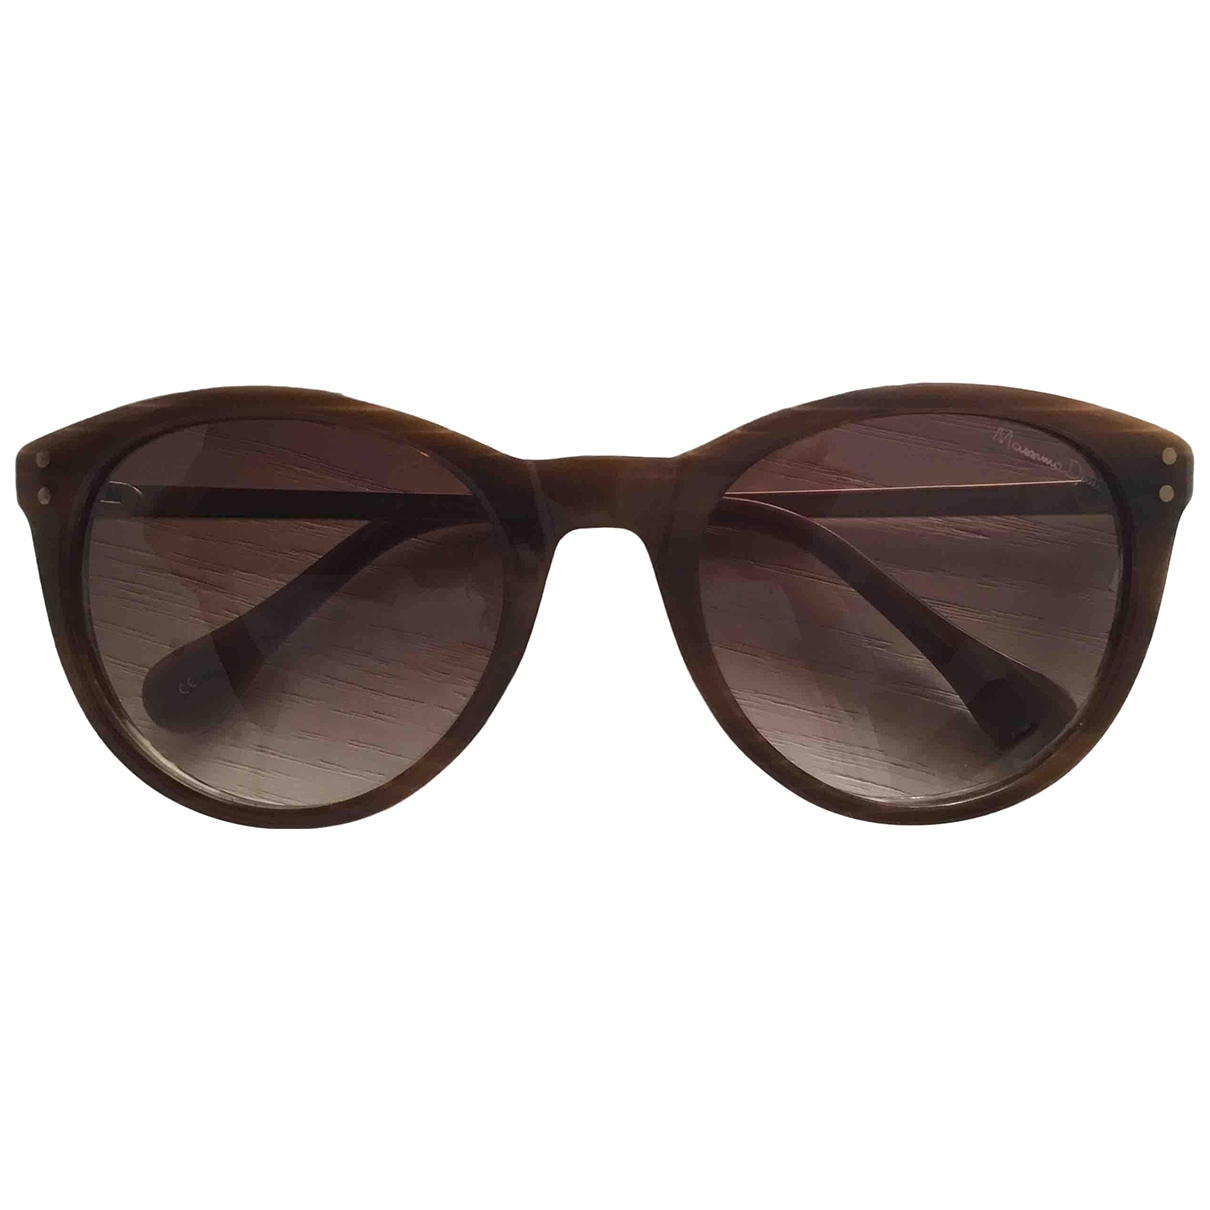 Massimo Dutti \N Brown Sunglasses for Women \N